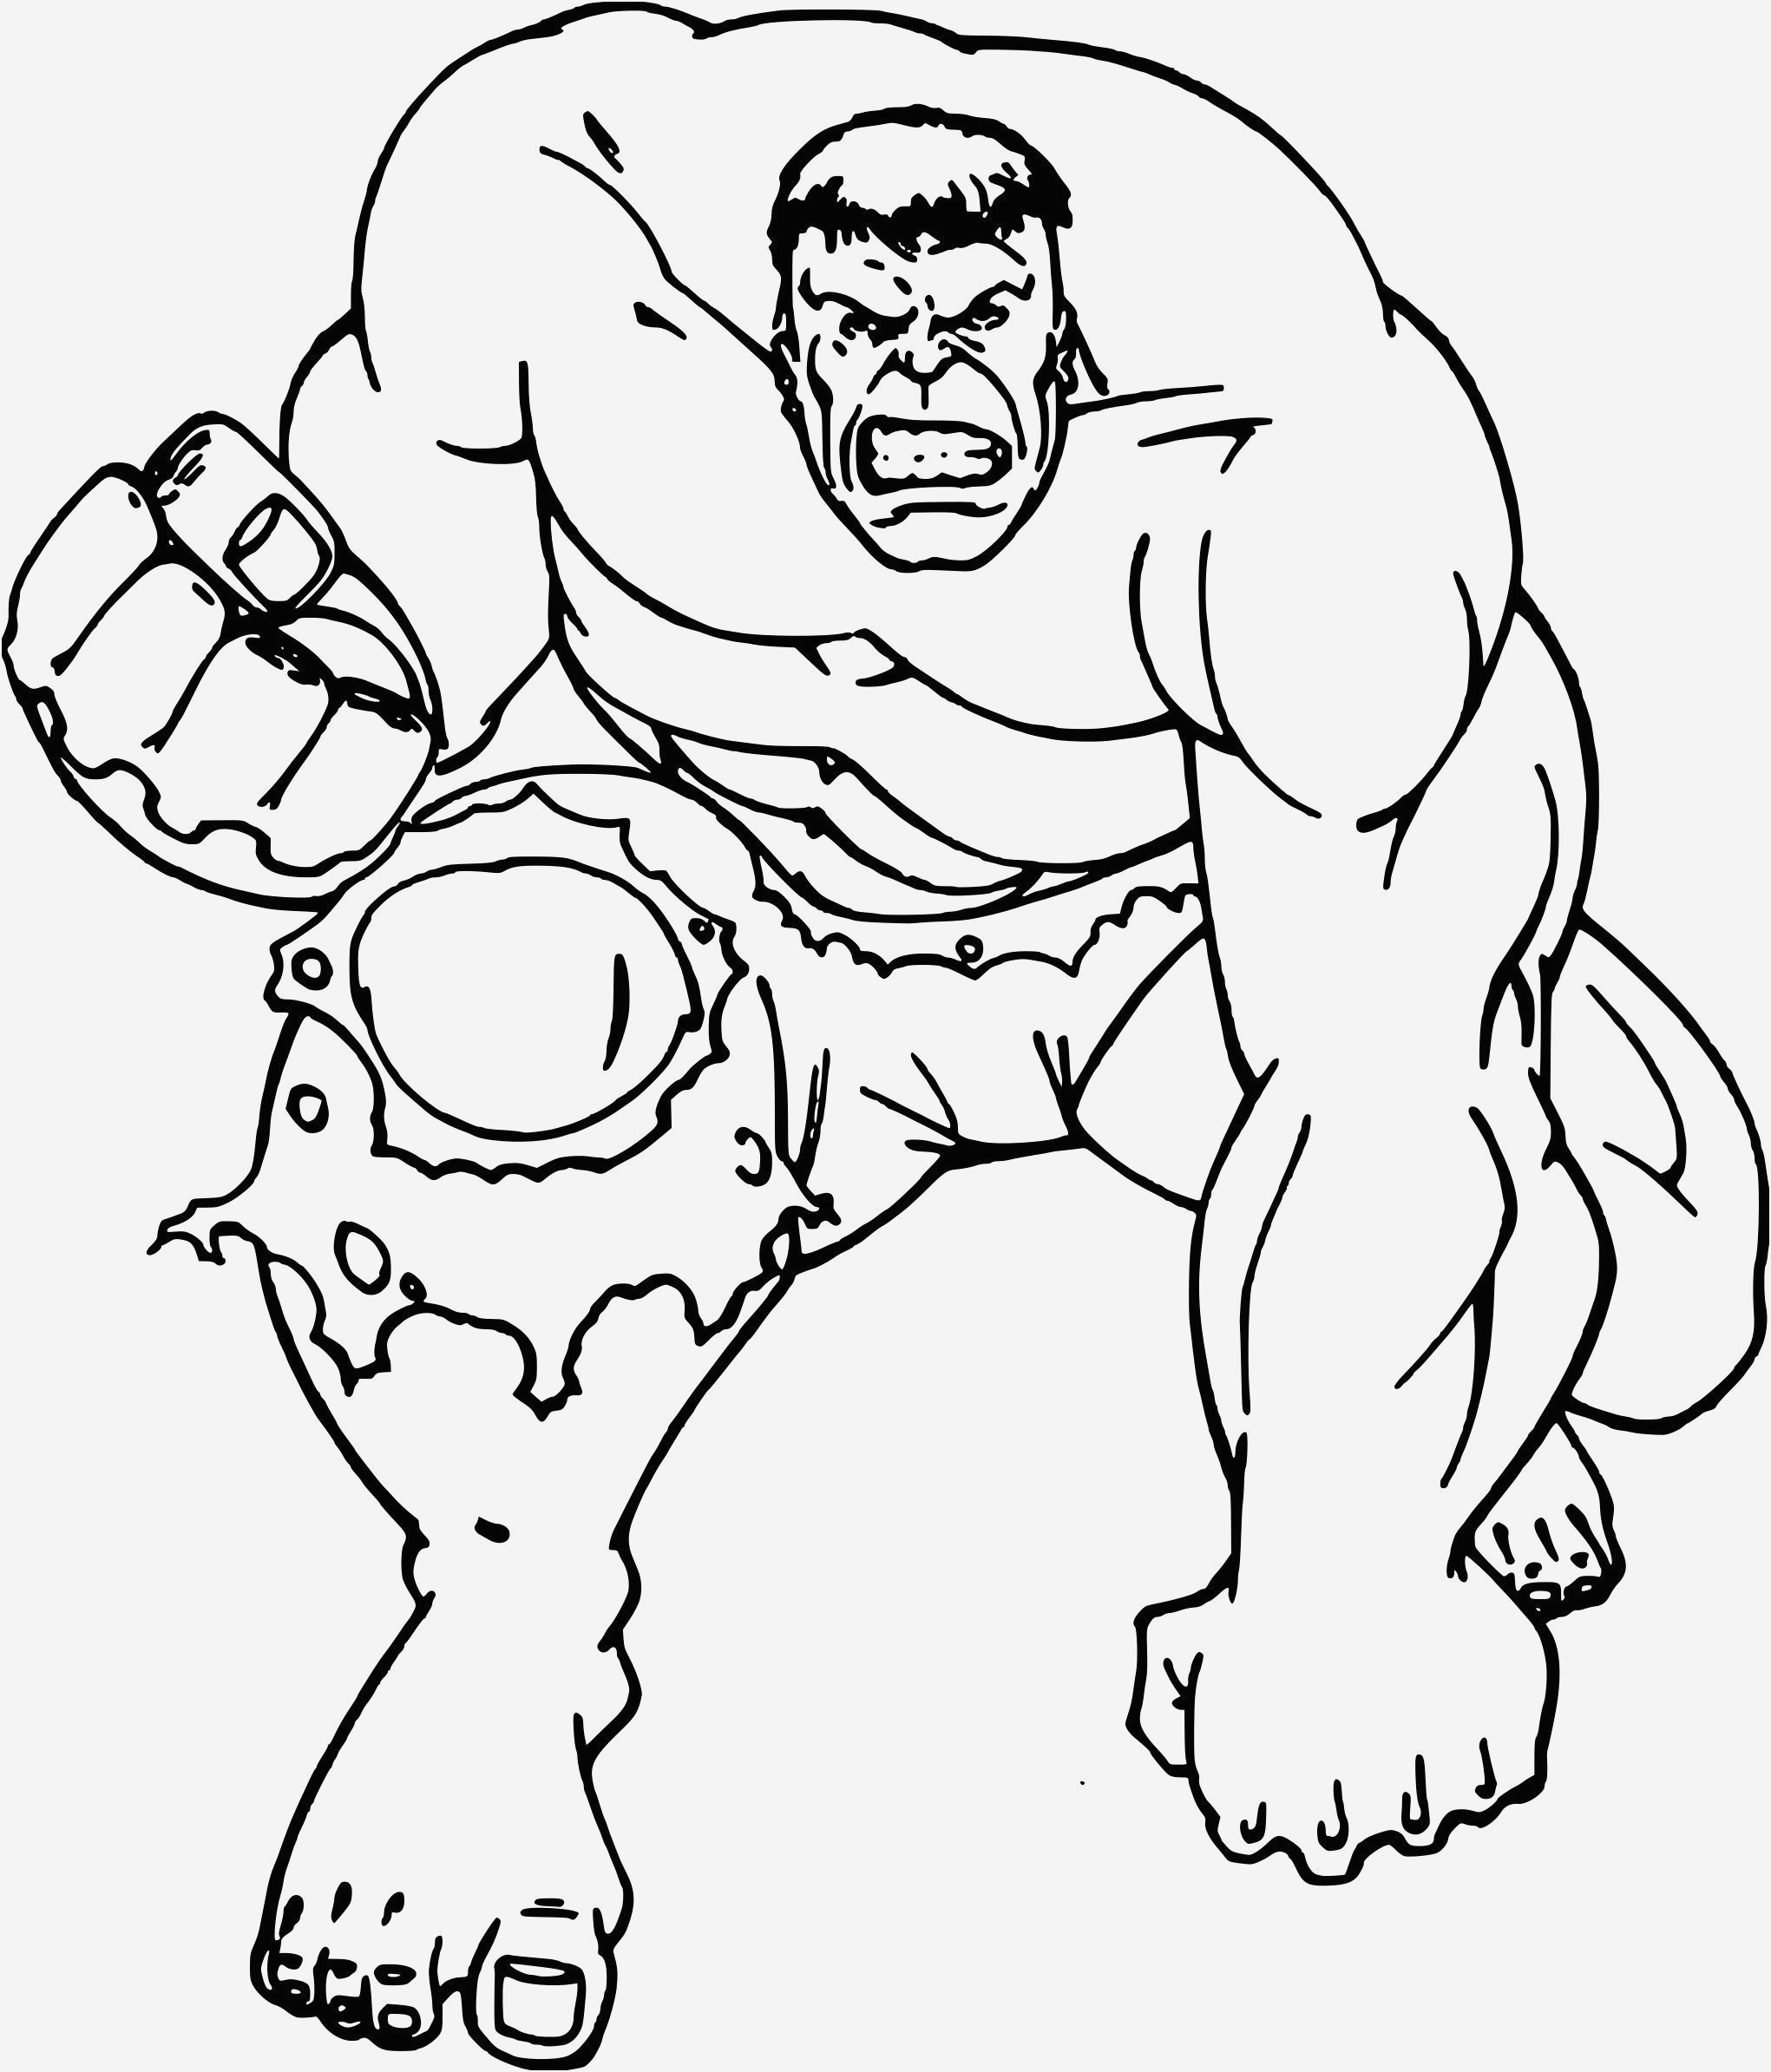 Coloriage Hulk Luxury Coloriage Hulk Le Super Heros Coloriagede Of Coloriage Hulk